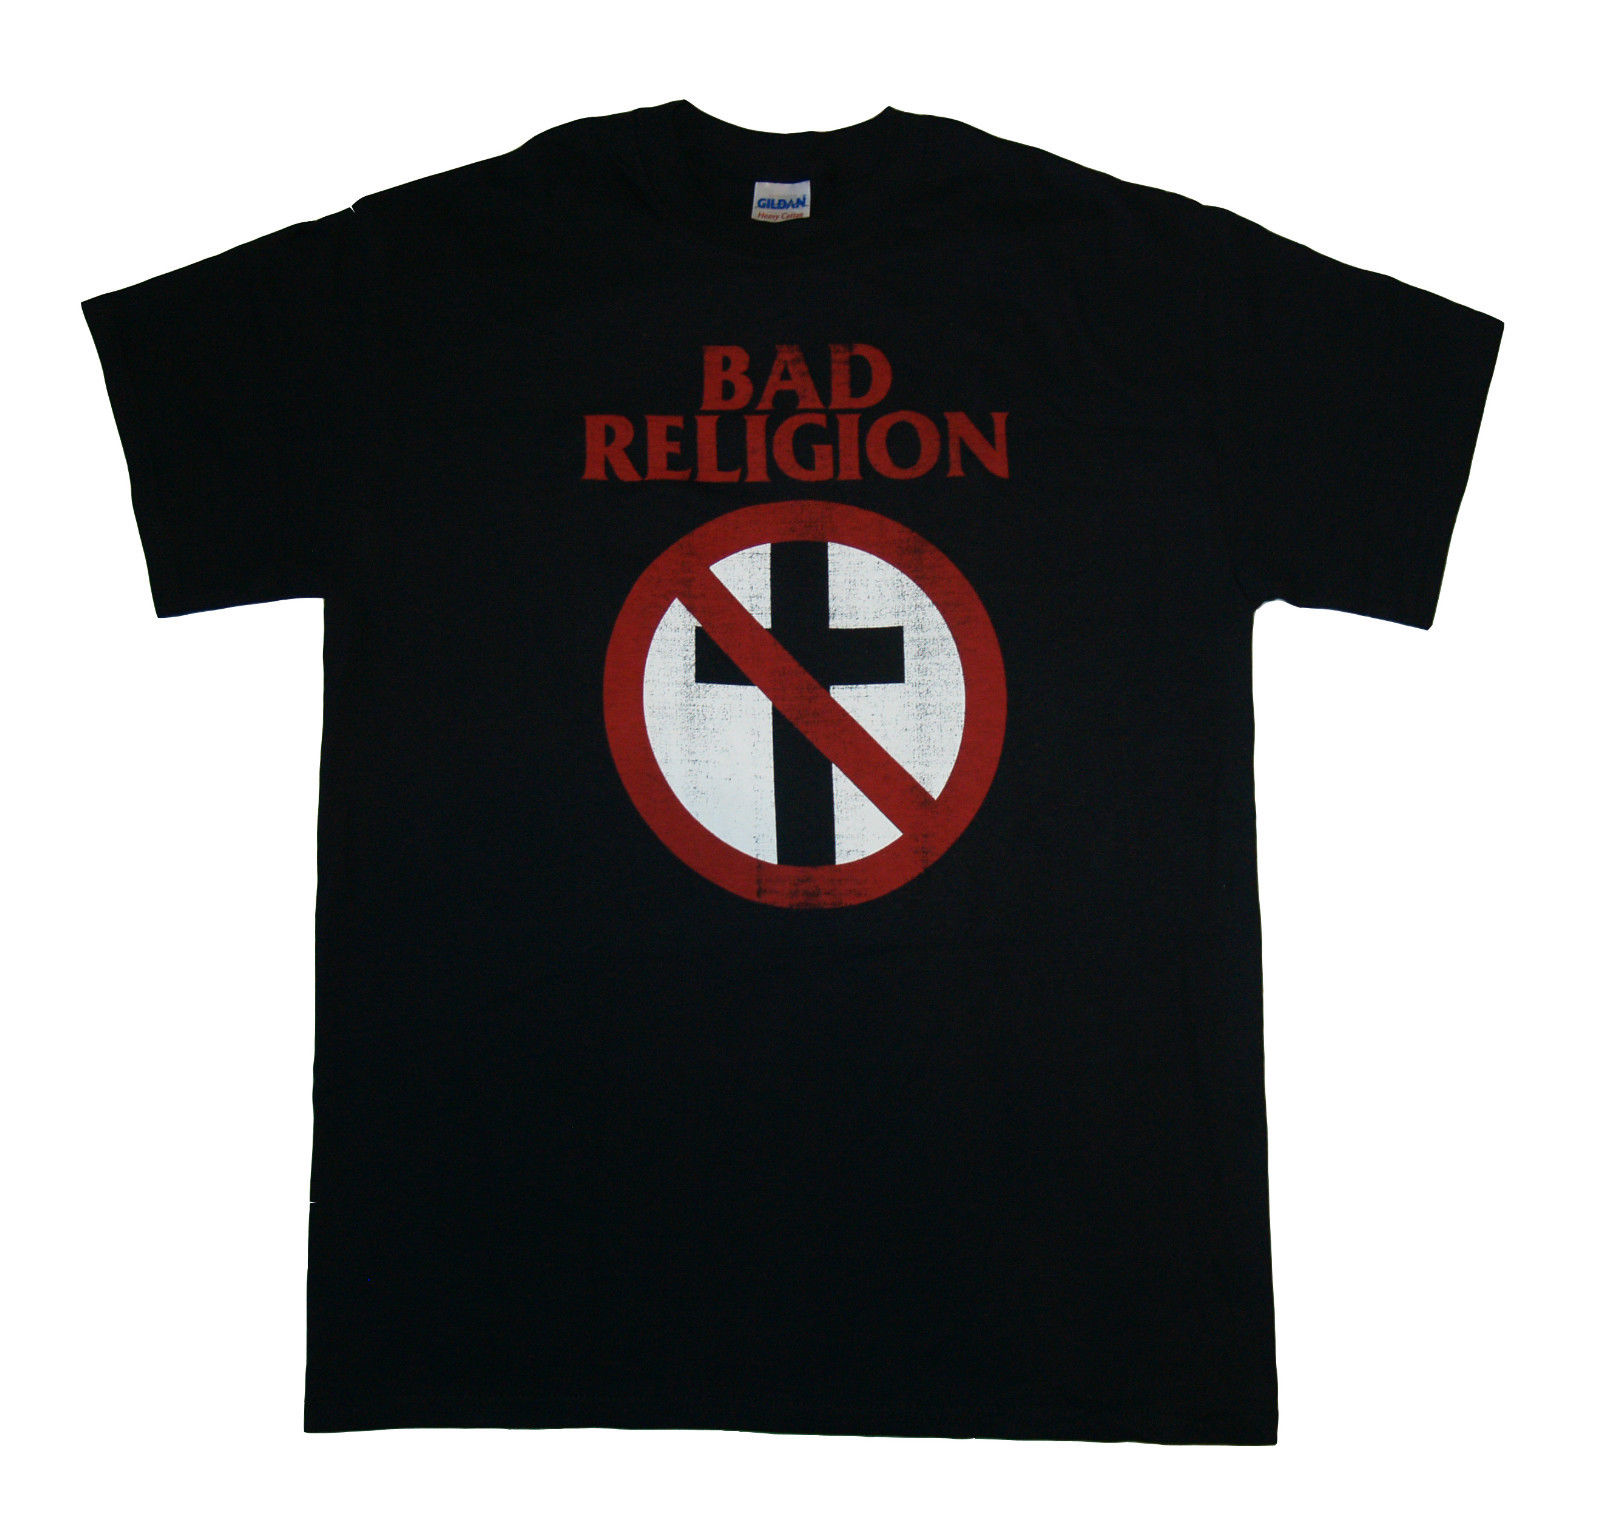 Black t shirt online design - Bad Religion Distressed Crossbuster Online Design T Shirt